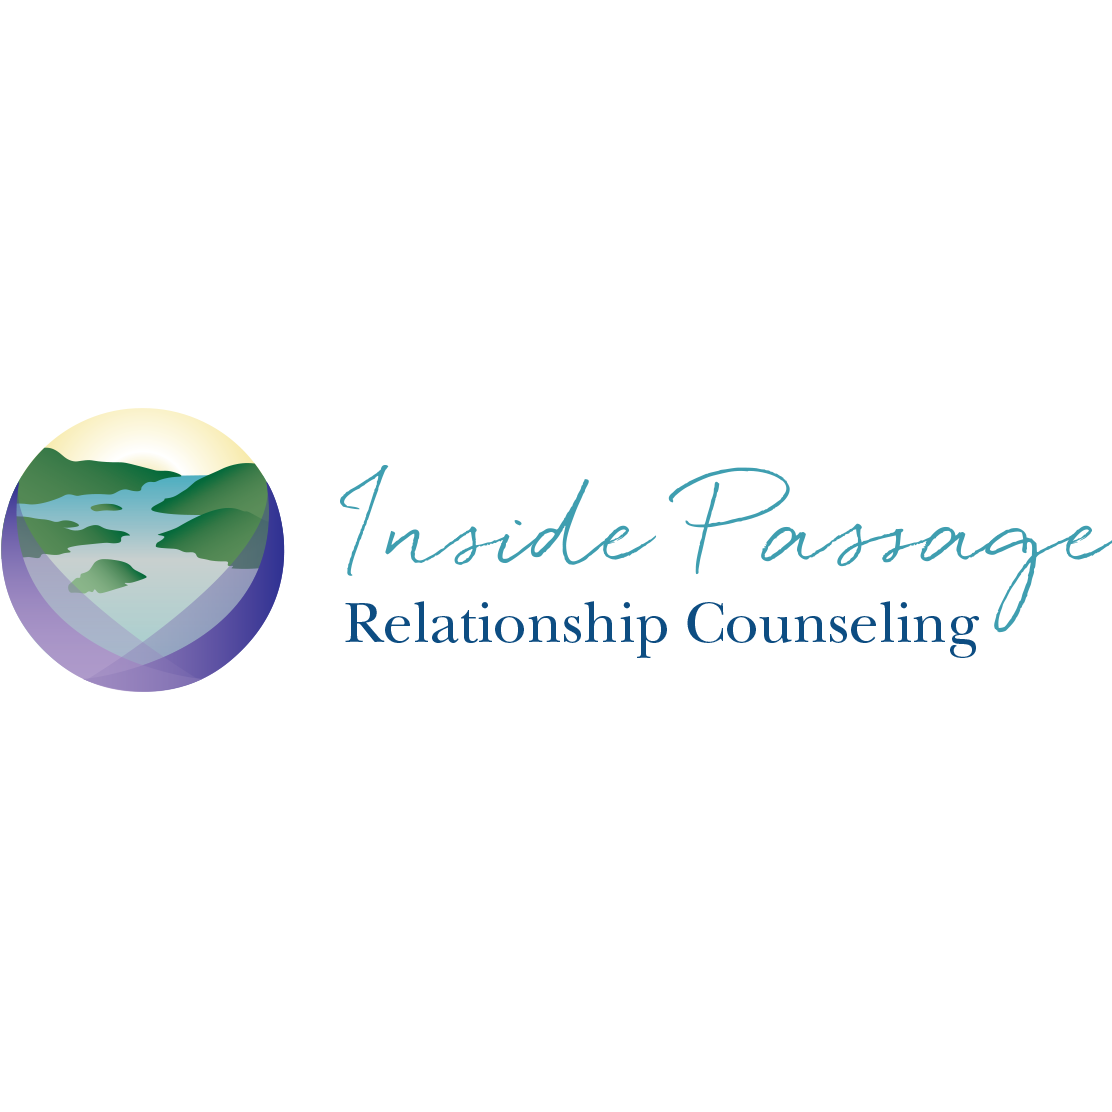 Inside Passage Relationship Counseling - Heather Varnau, LMHC/